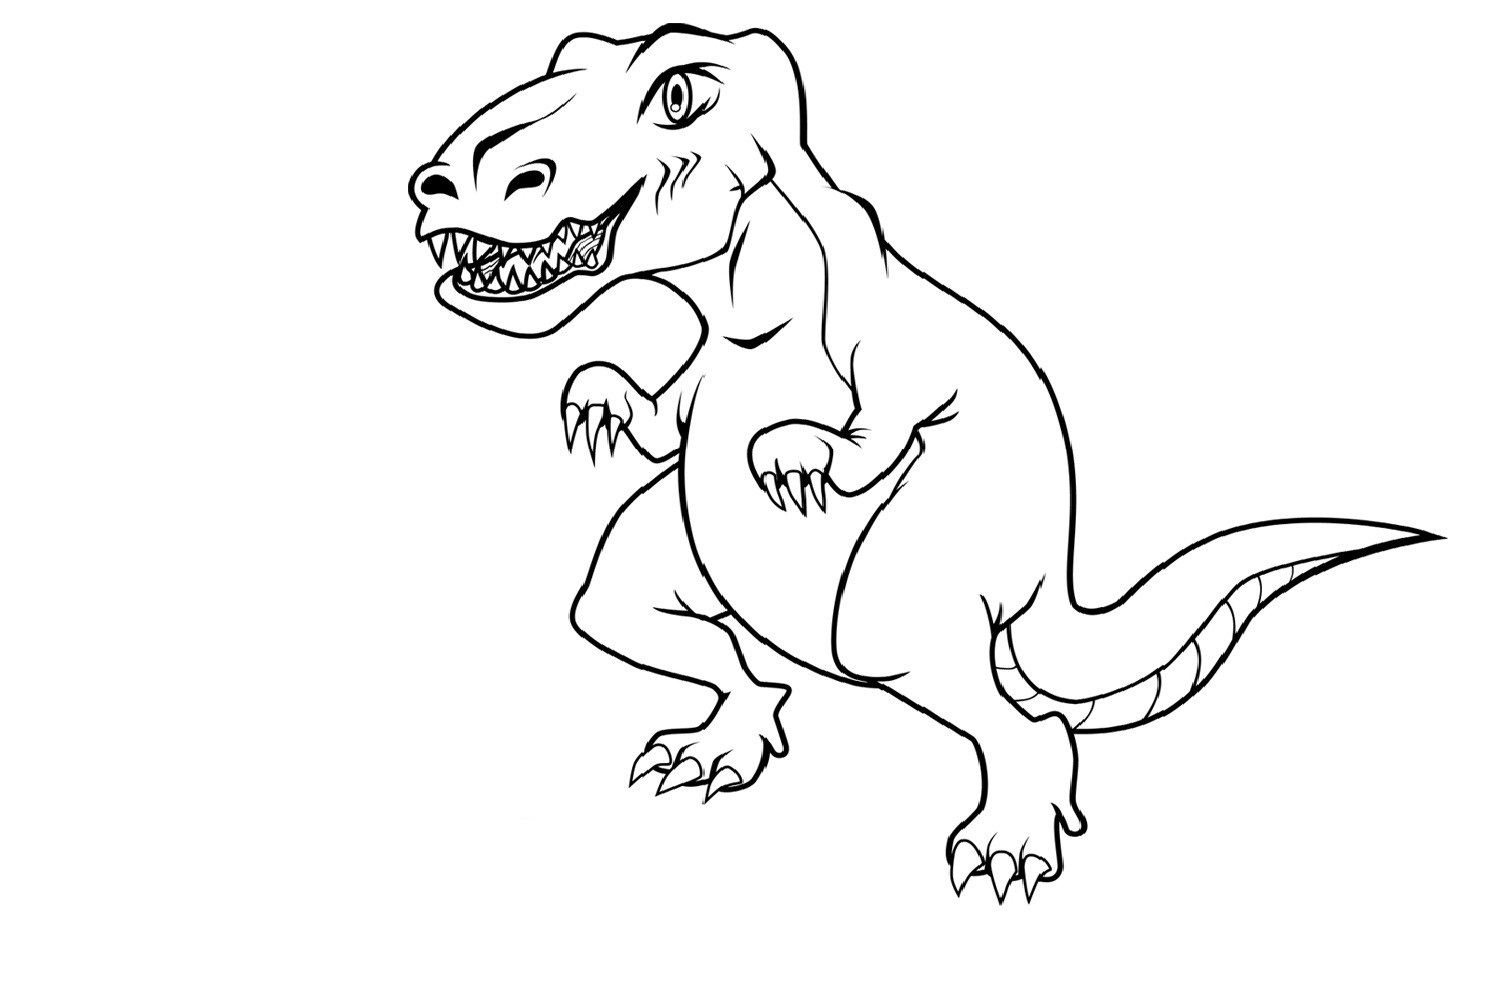 free printable dinosaur coloring pages - Free Coloring Pages For Kids